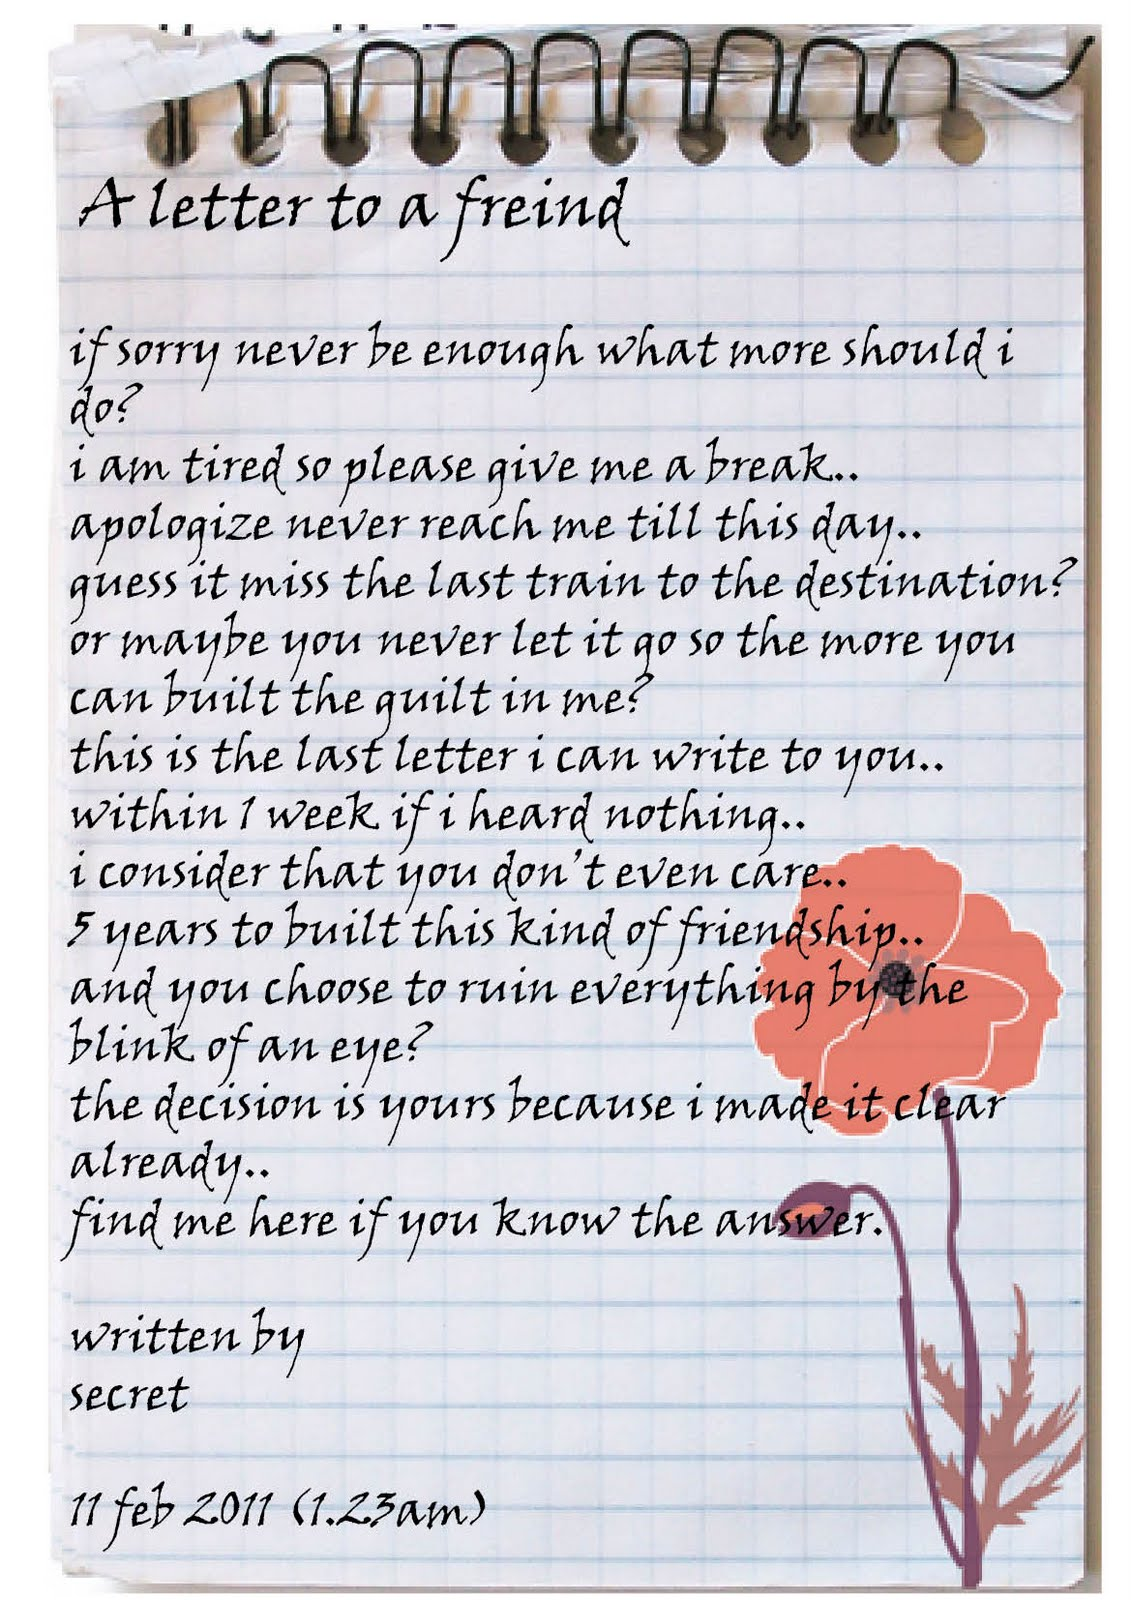 Letter to a friend stating memorable homework service letter to a friend stating memorable send this kind of polite letter to your friend who spiritdancerdesigns Gallery